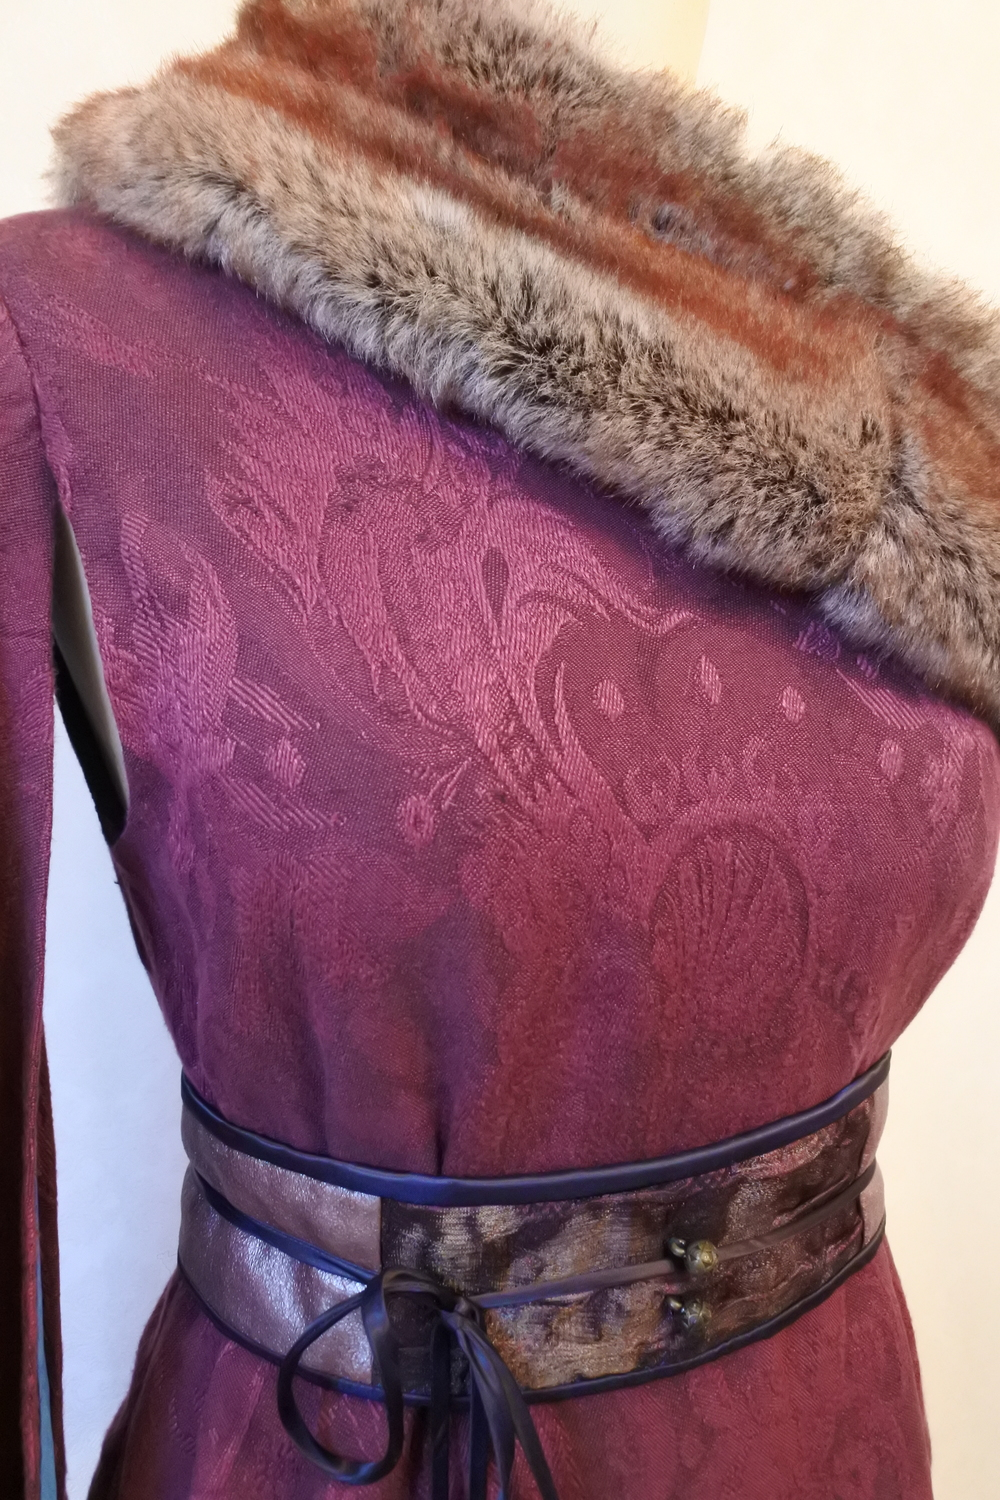 Fur collar and beaded waistband detail